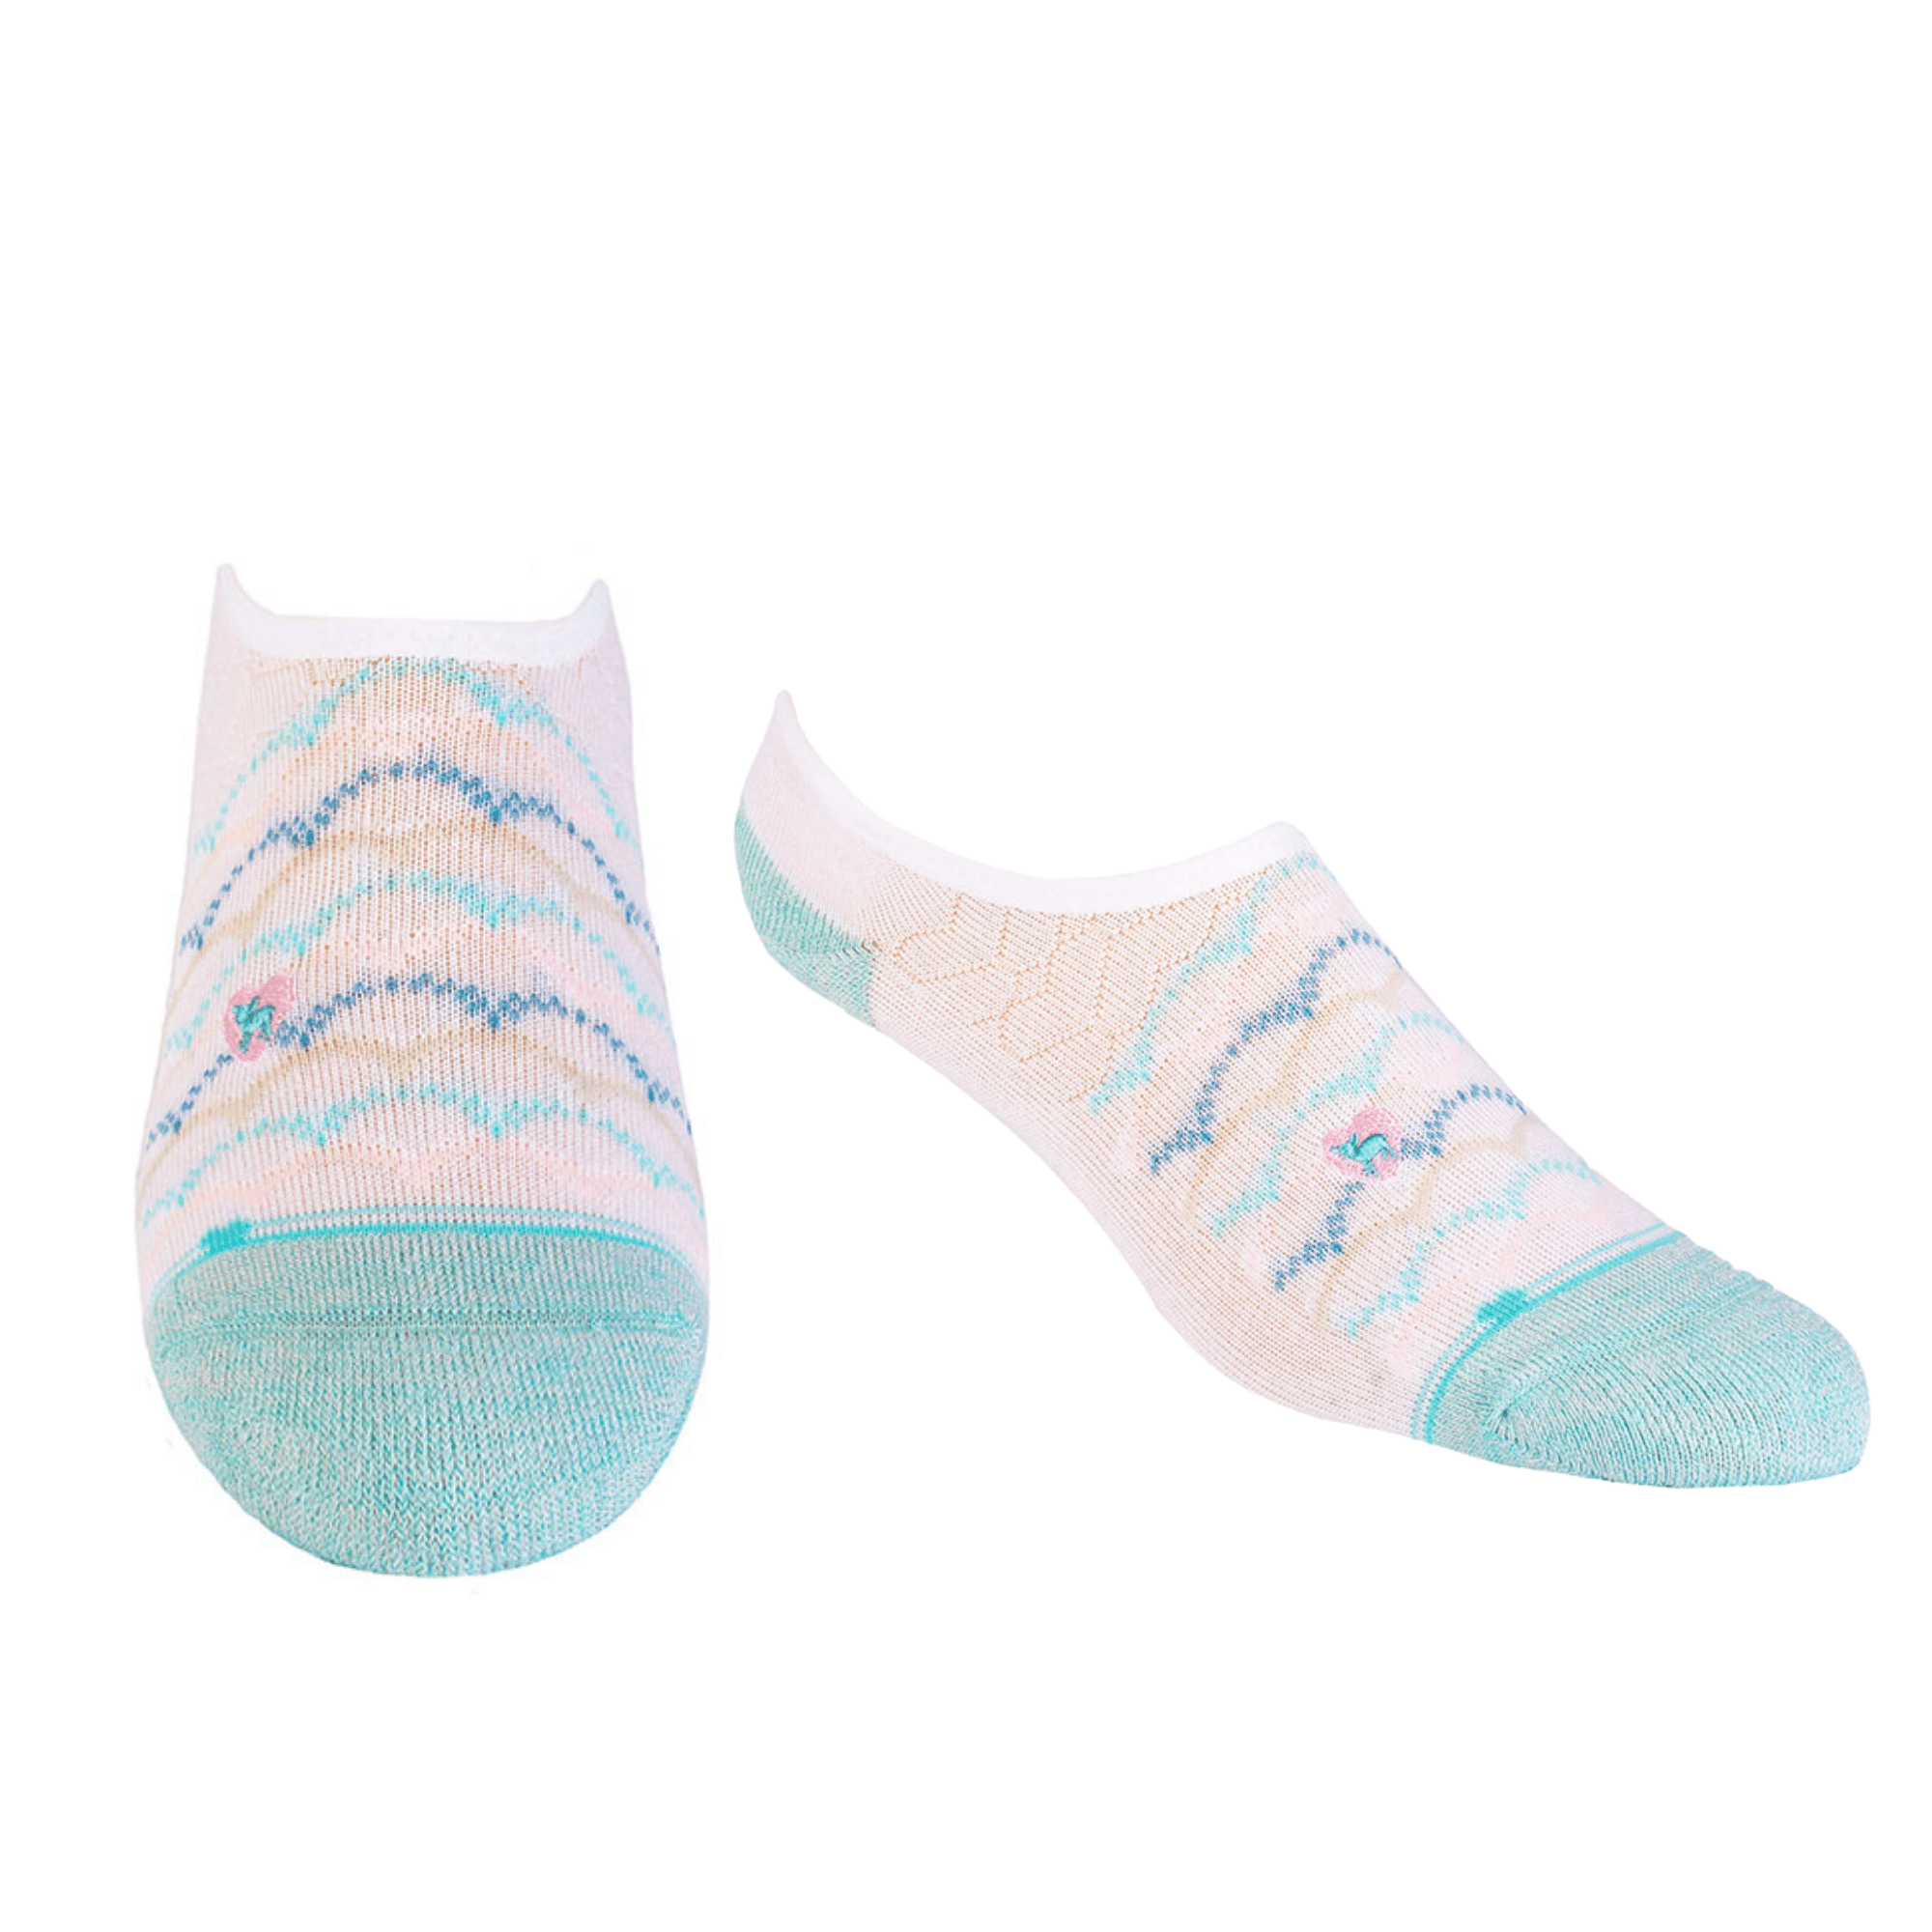 Bamboo Socks | No Fuss No-Show | Surf's Up Green